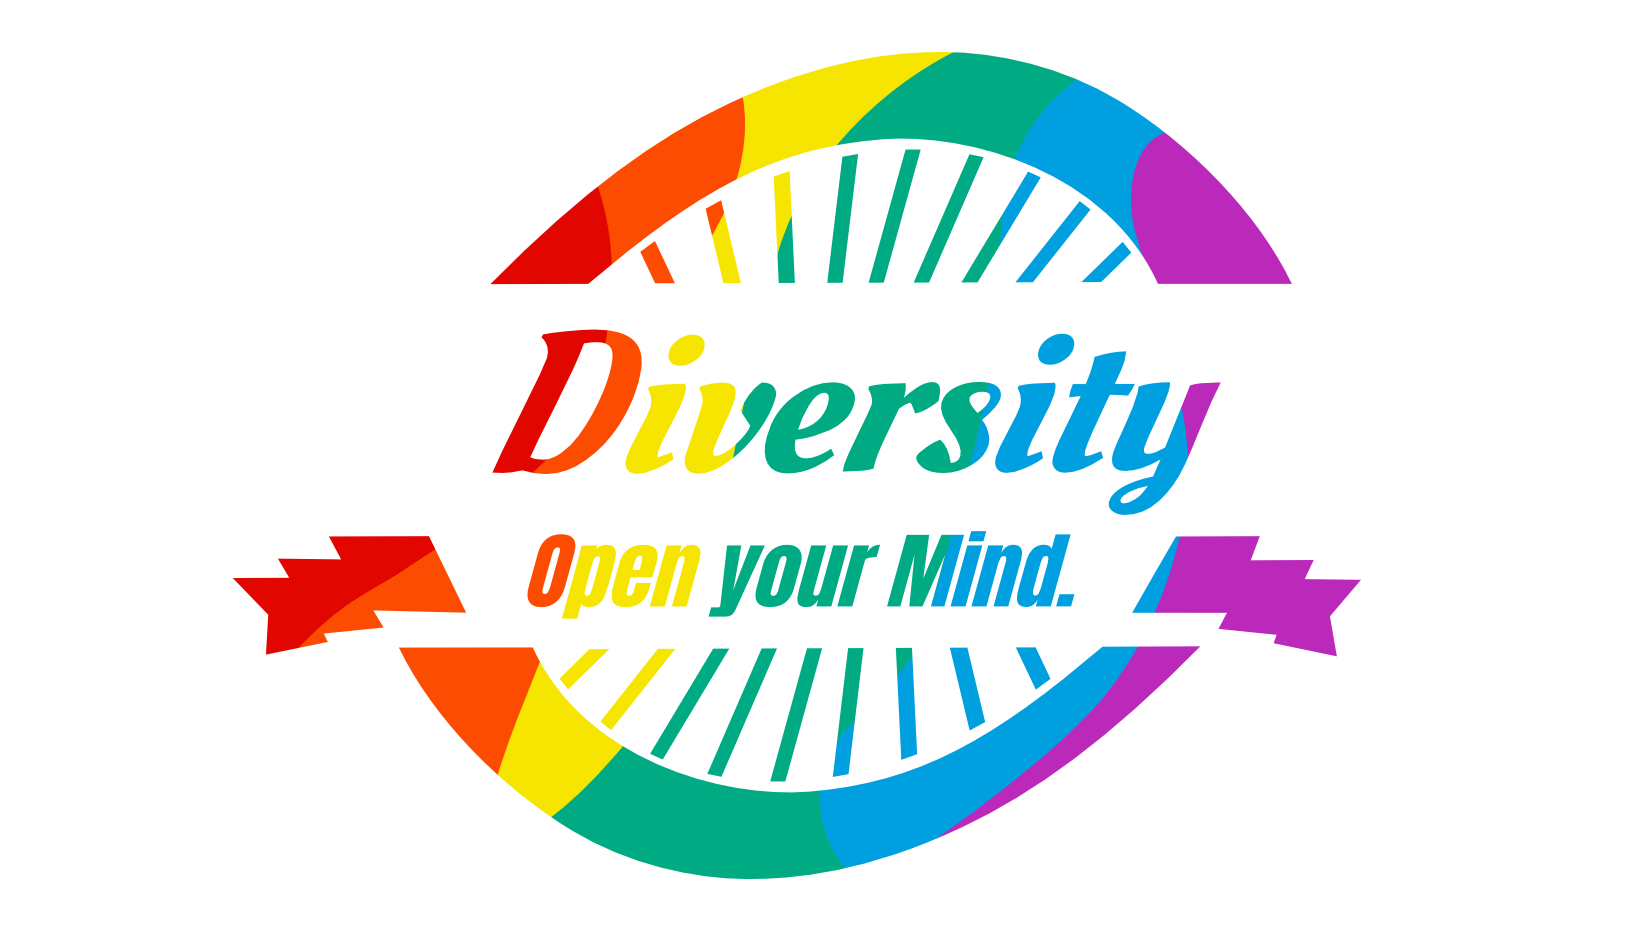 Post-Picture-WS-Diversity-OpenYourMind-Rainbow